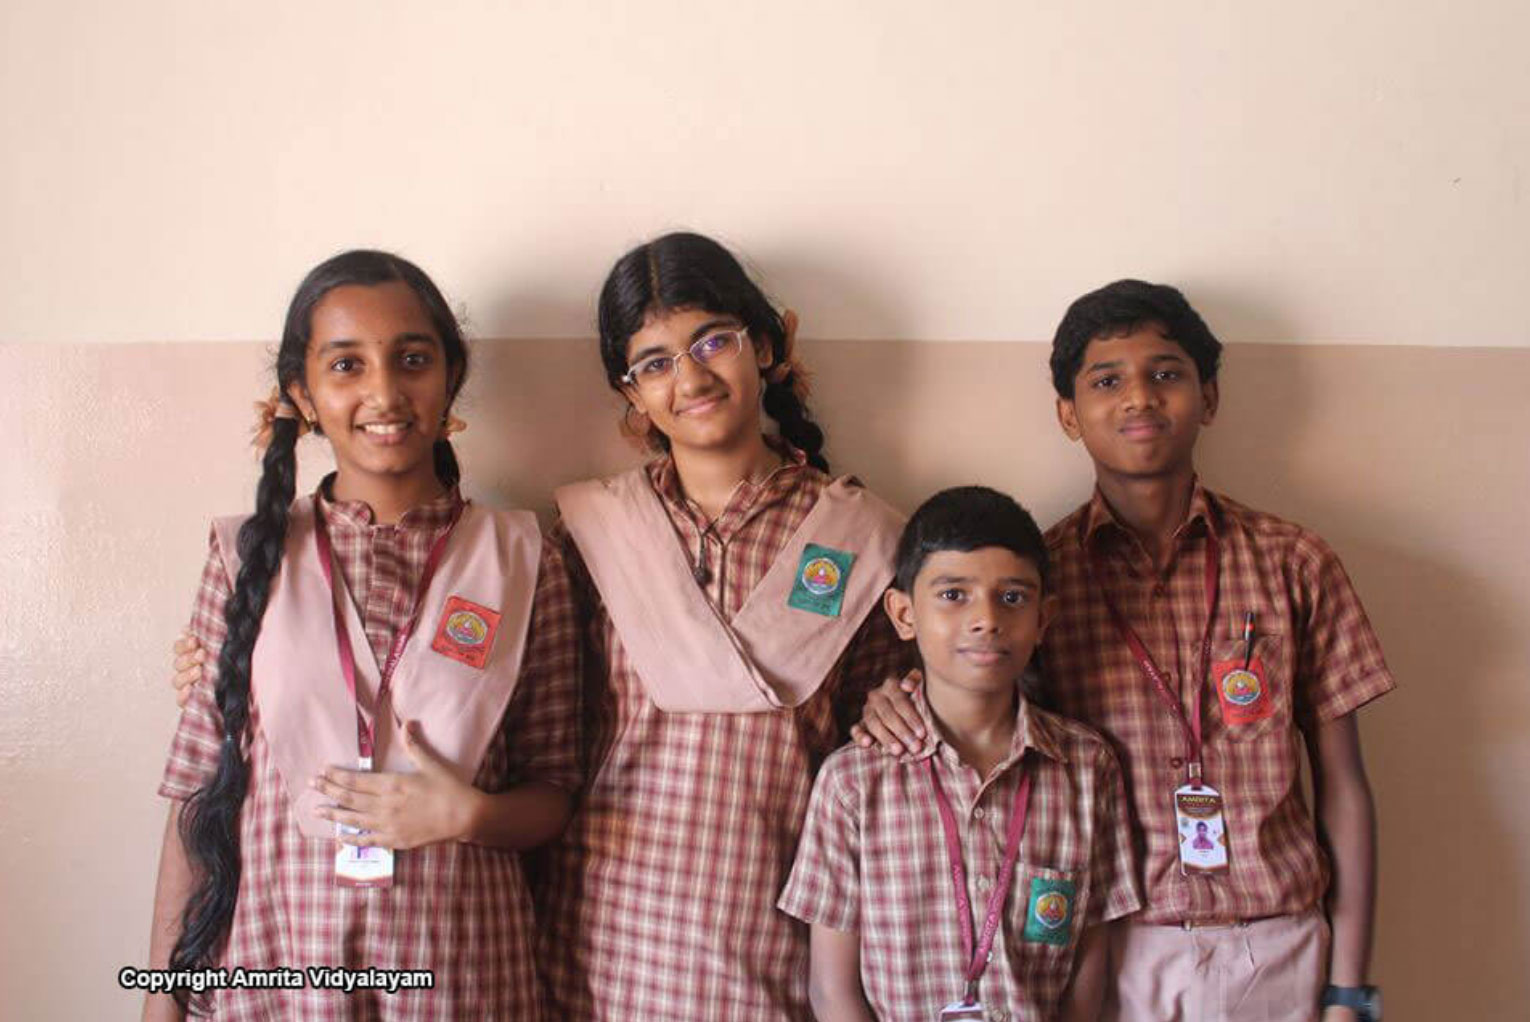 Amrita Kids selected for presentation at FabLearn 2020